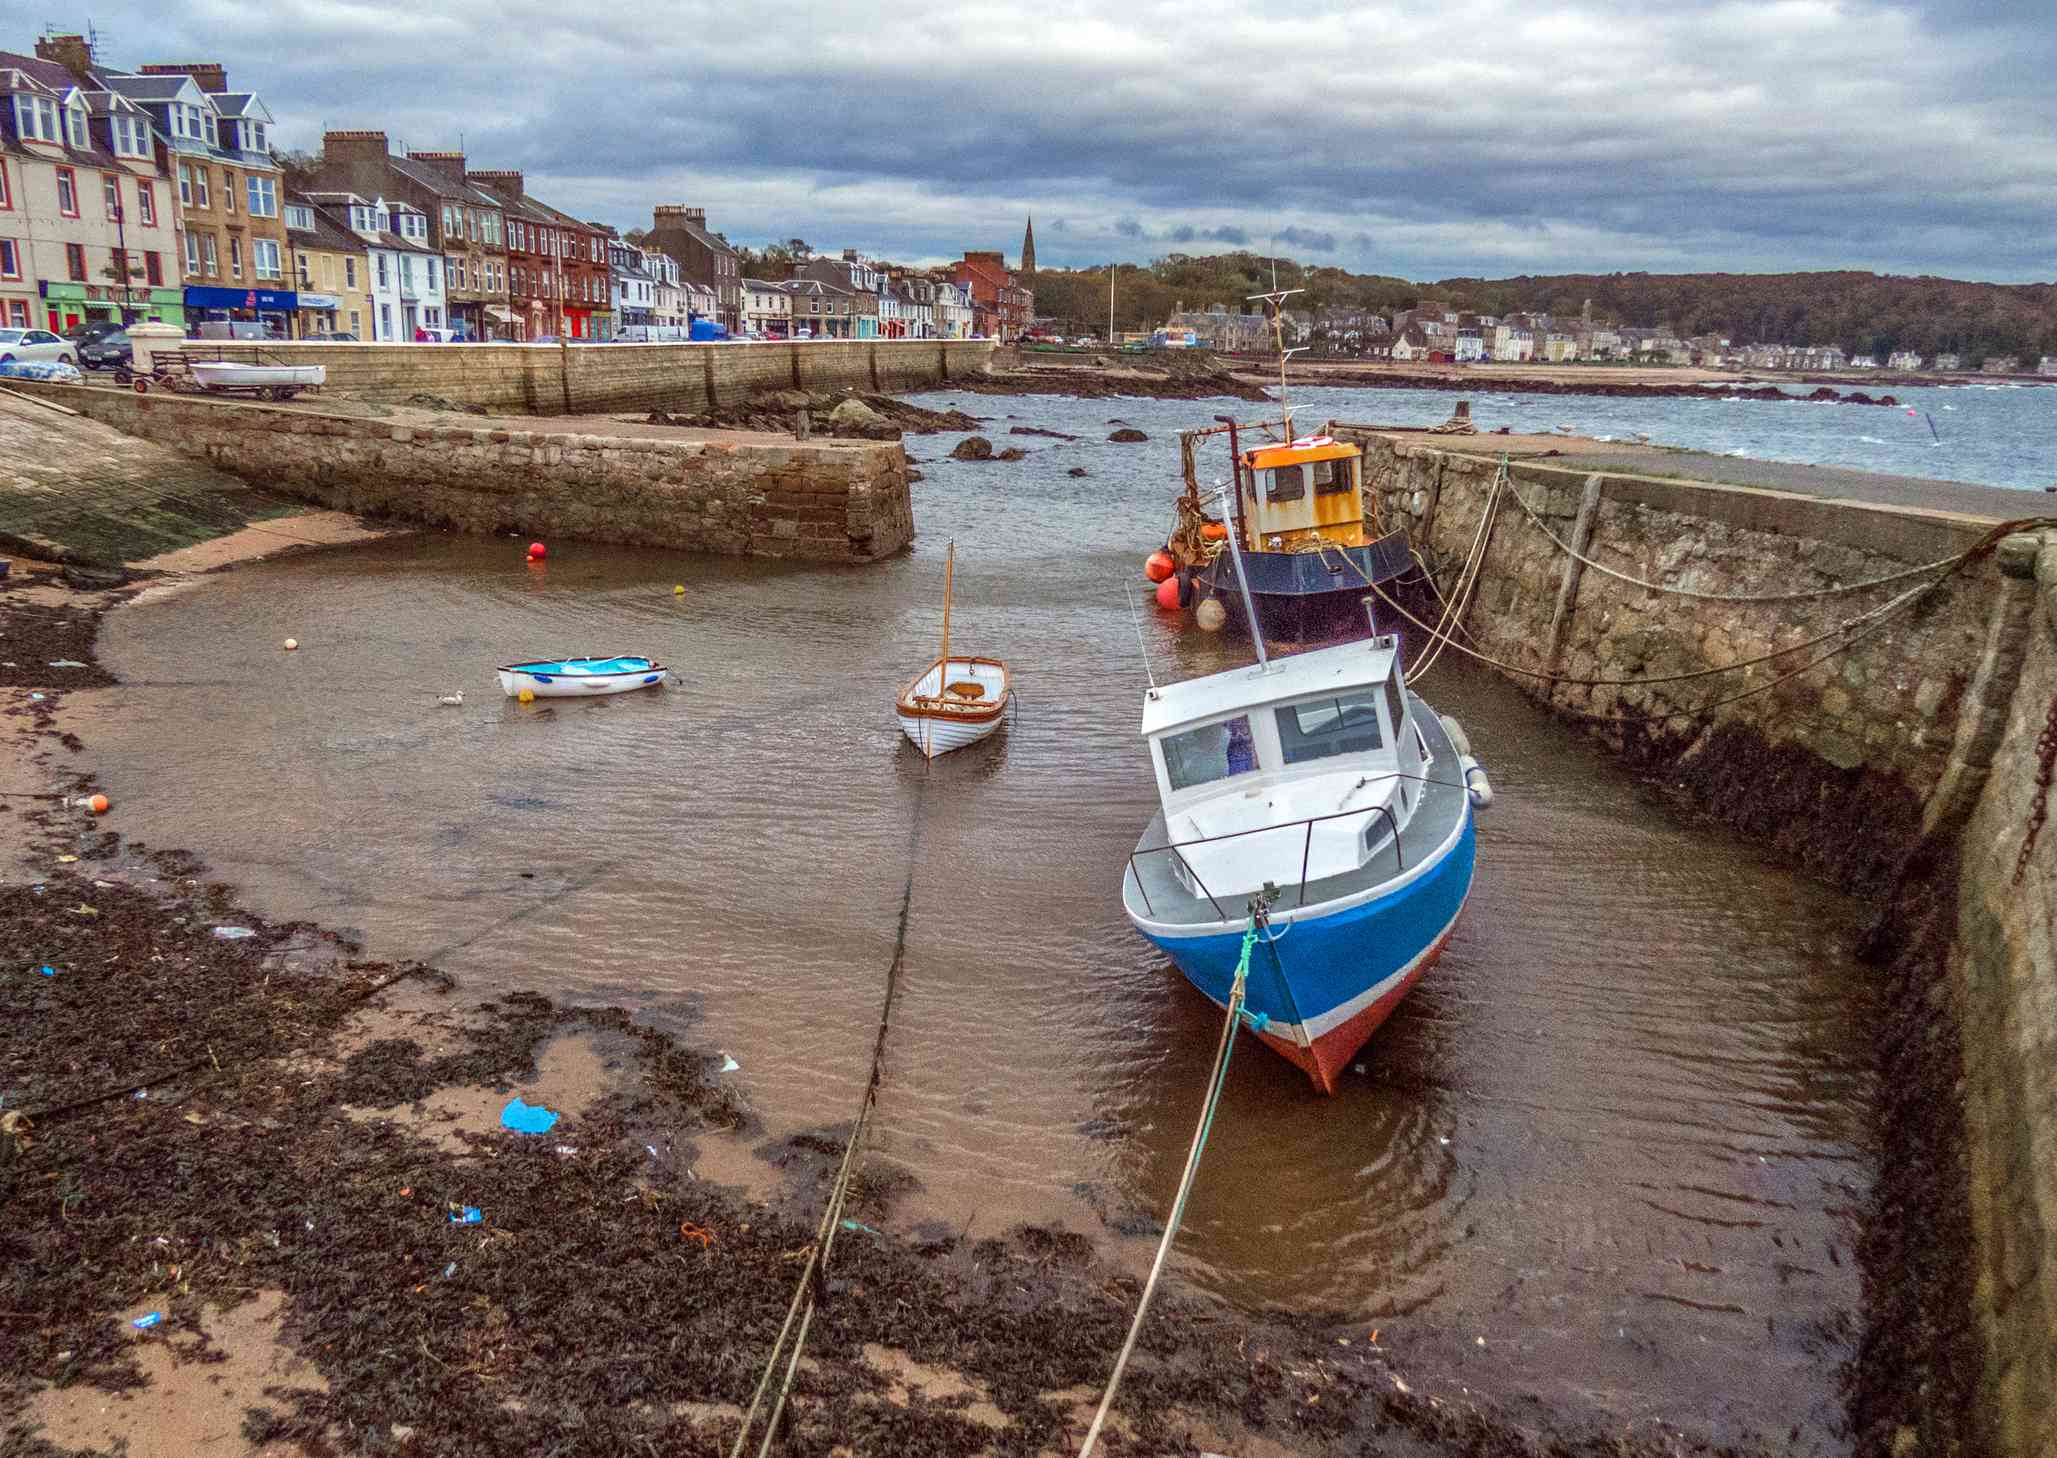 The town of Millport on Great Cumbrae